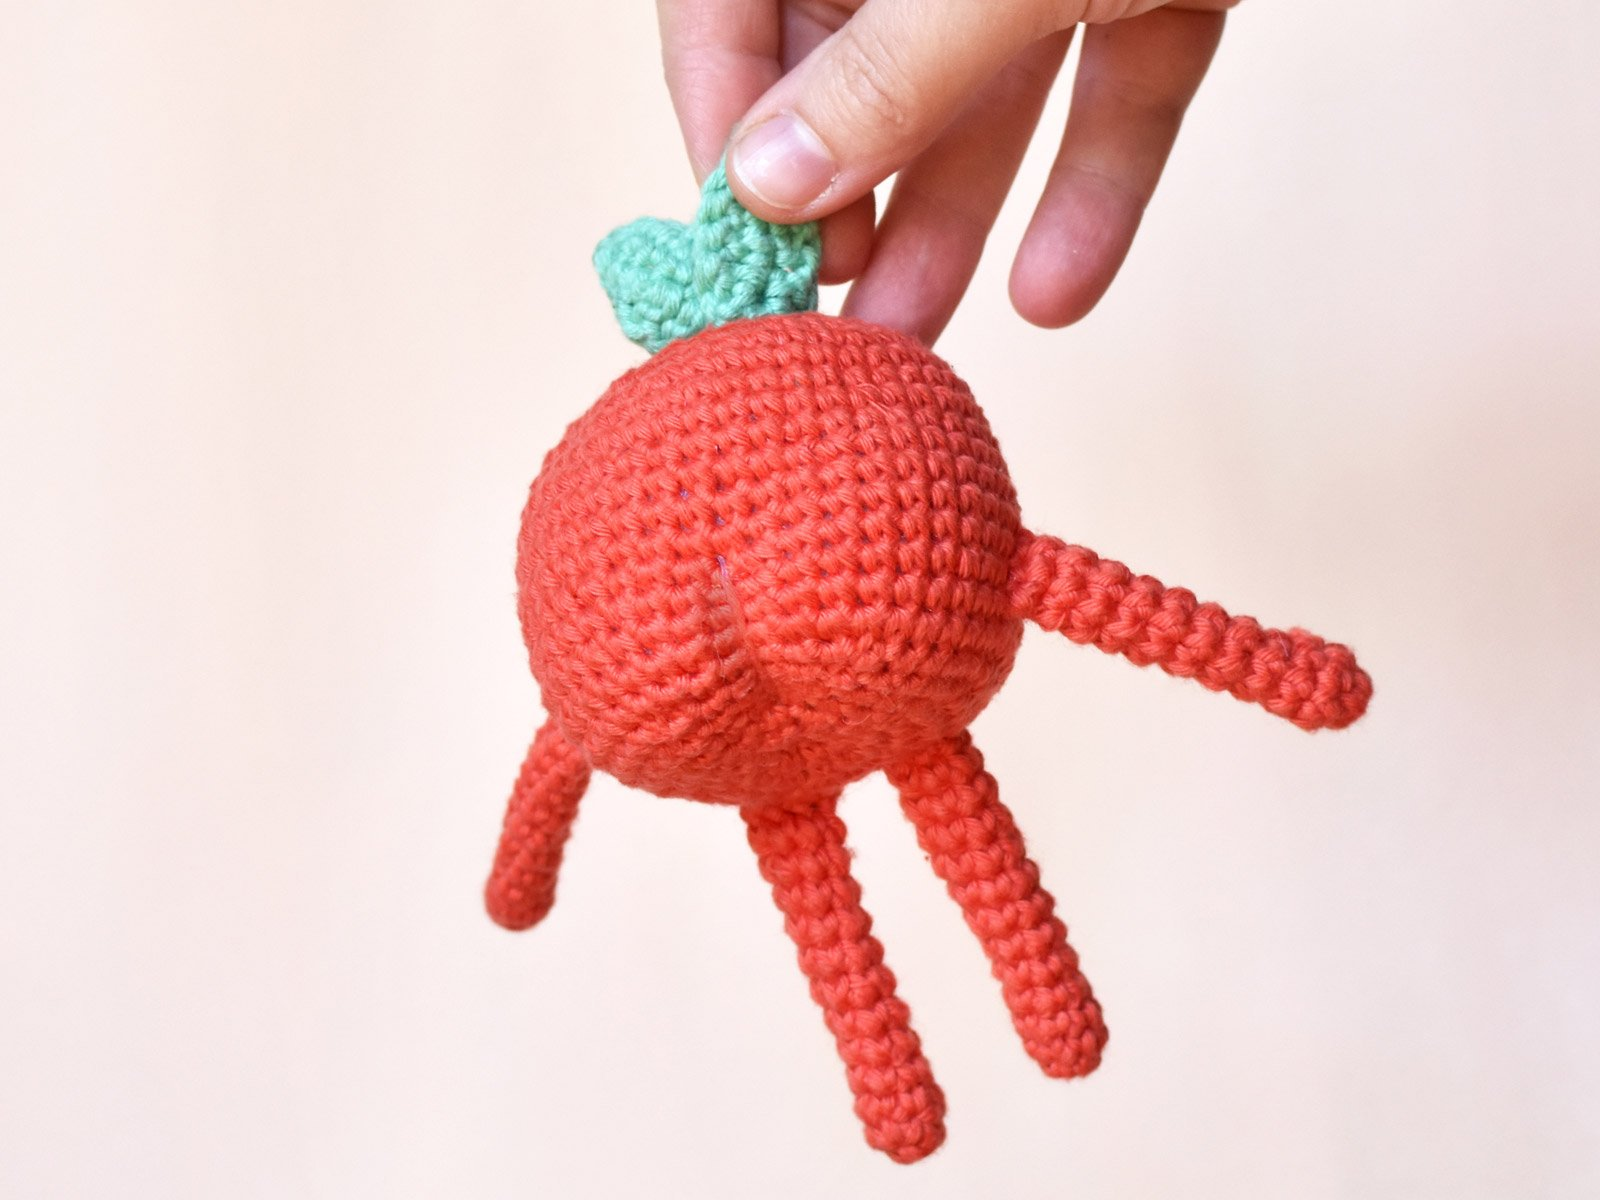 A hand holding onto crochet Apple's leaf, showing the back of the Apple.